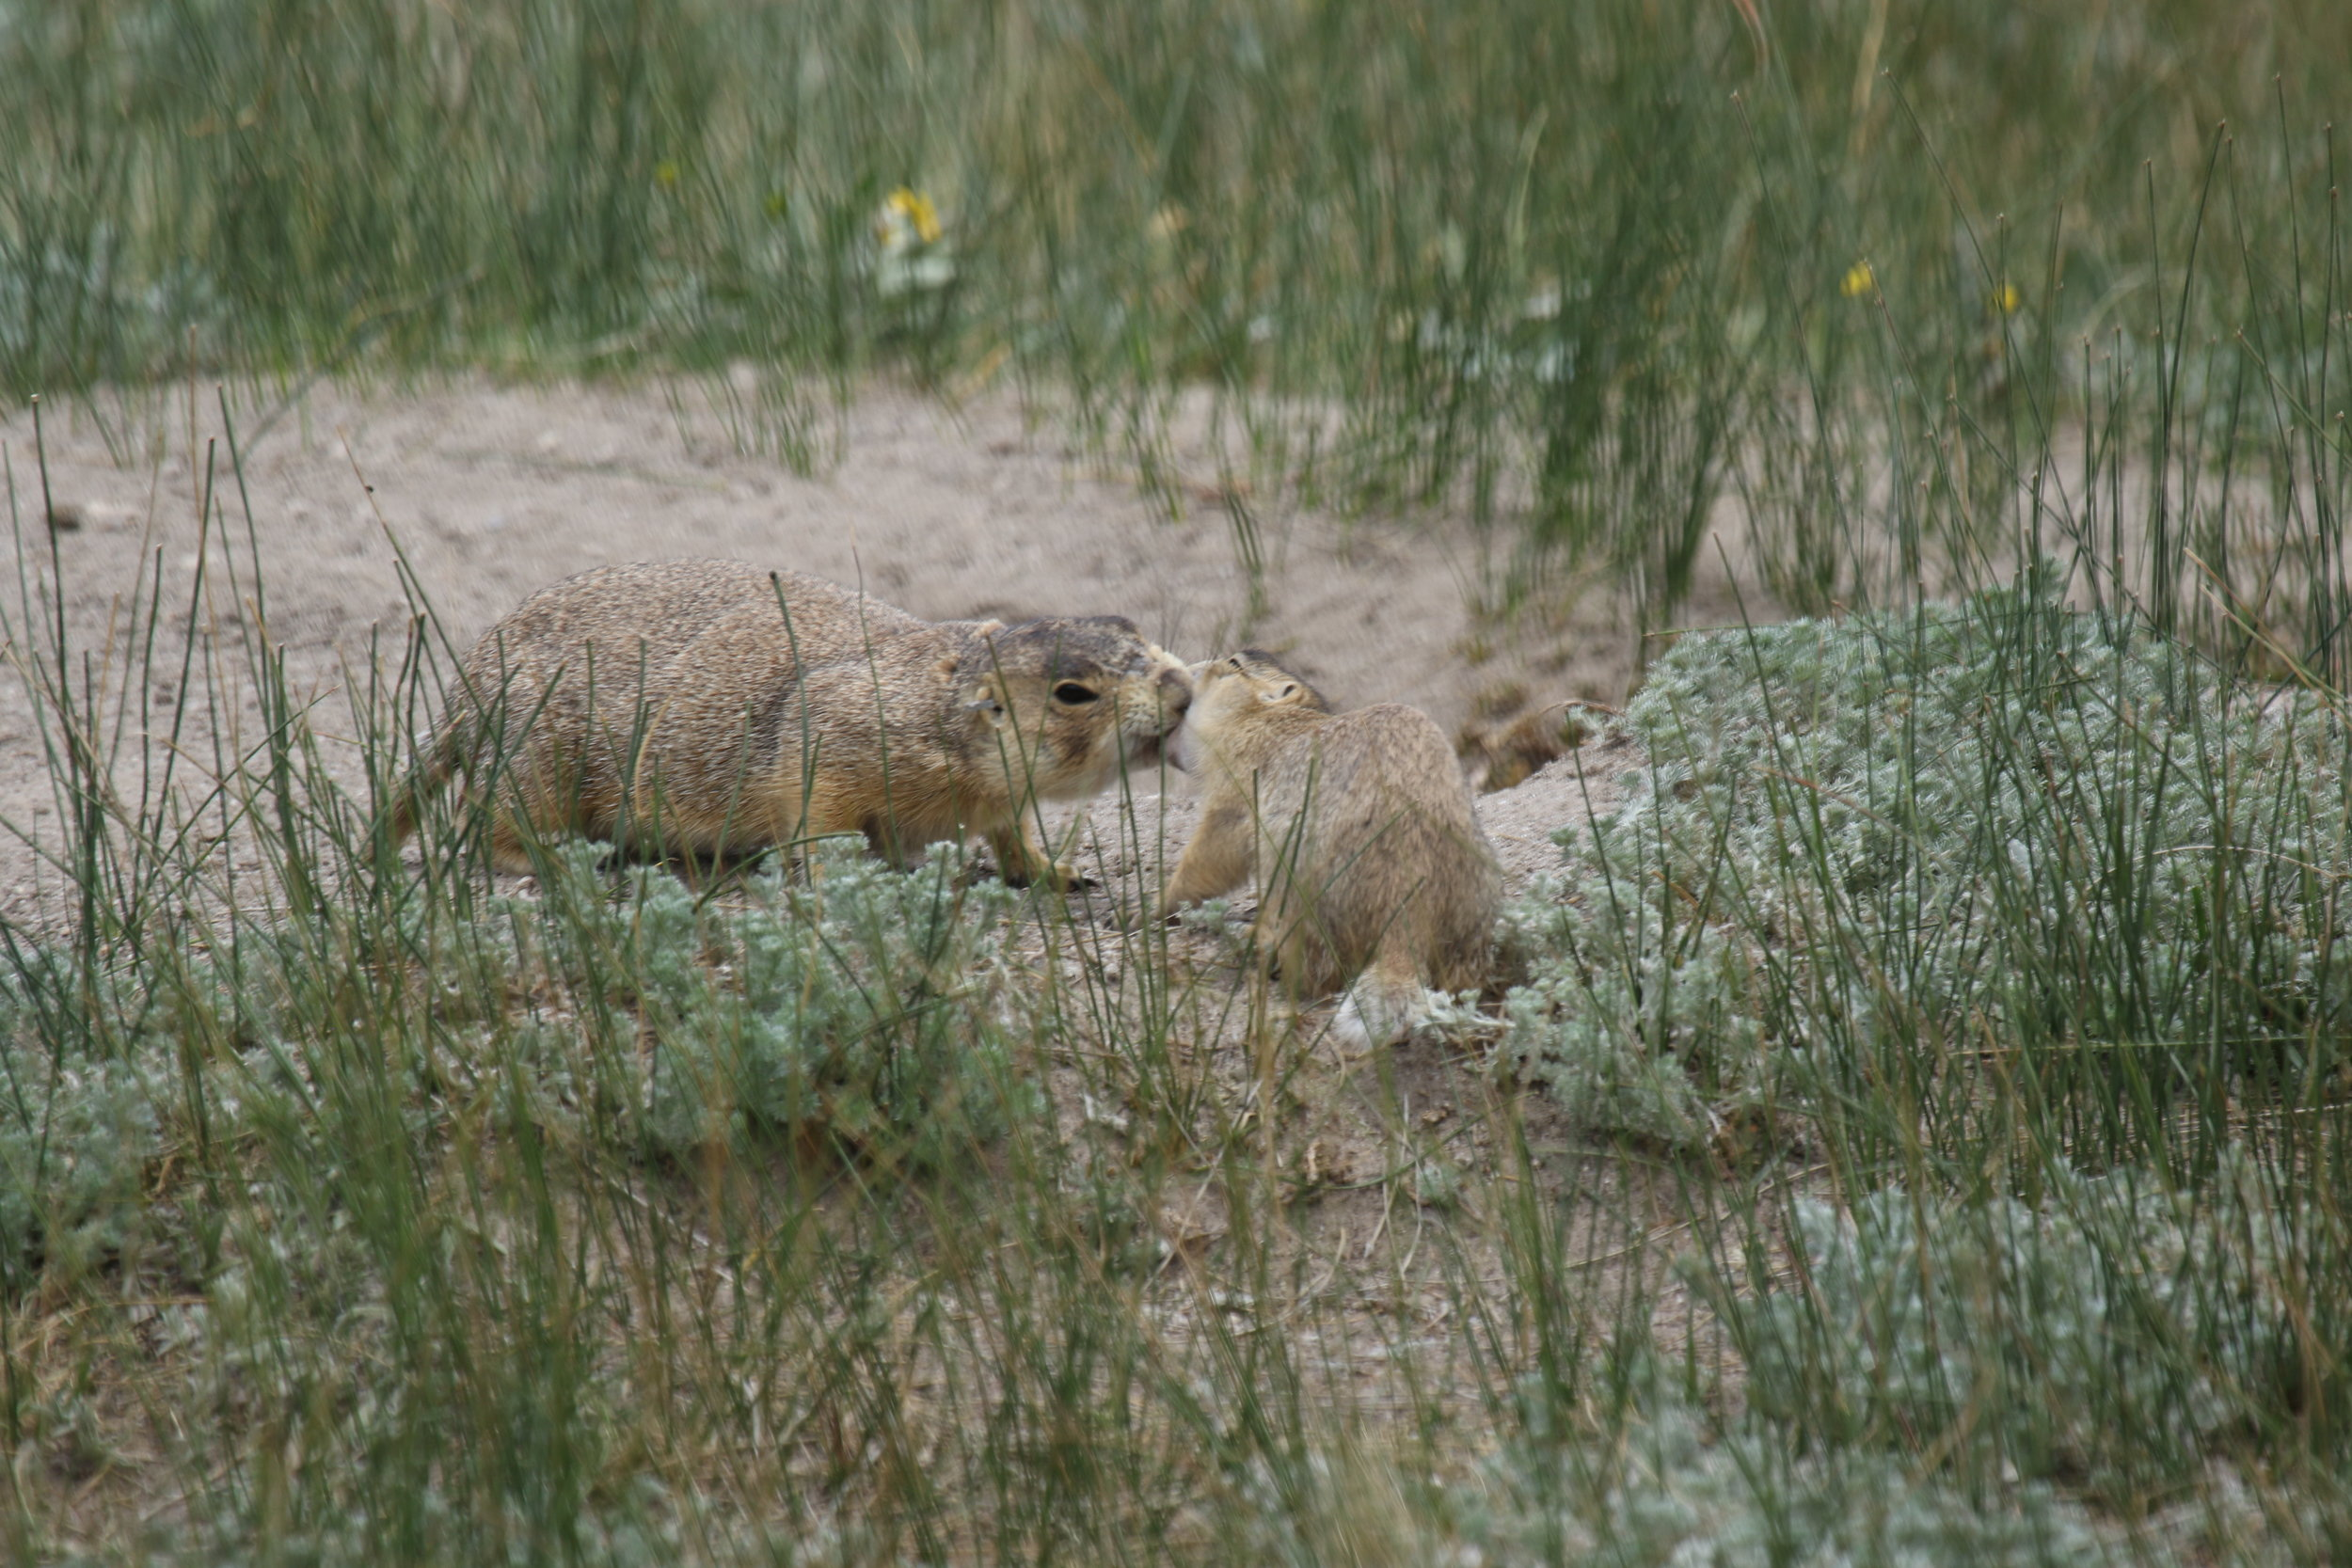 A friendly kiss; an adult prairie dog kisses a baby to say hello and determine if the offspring is hers.  ©MRR 2017